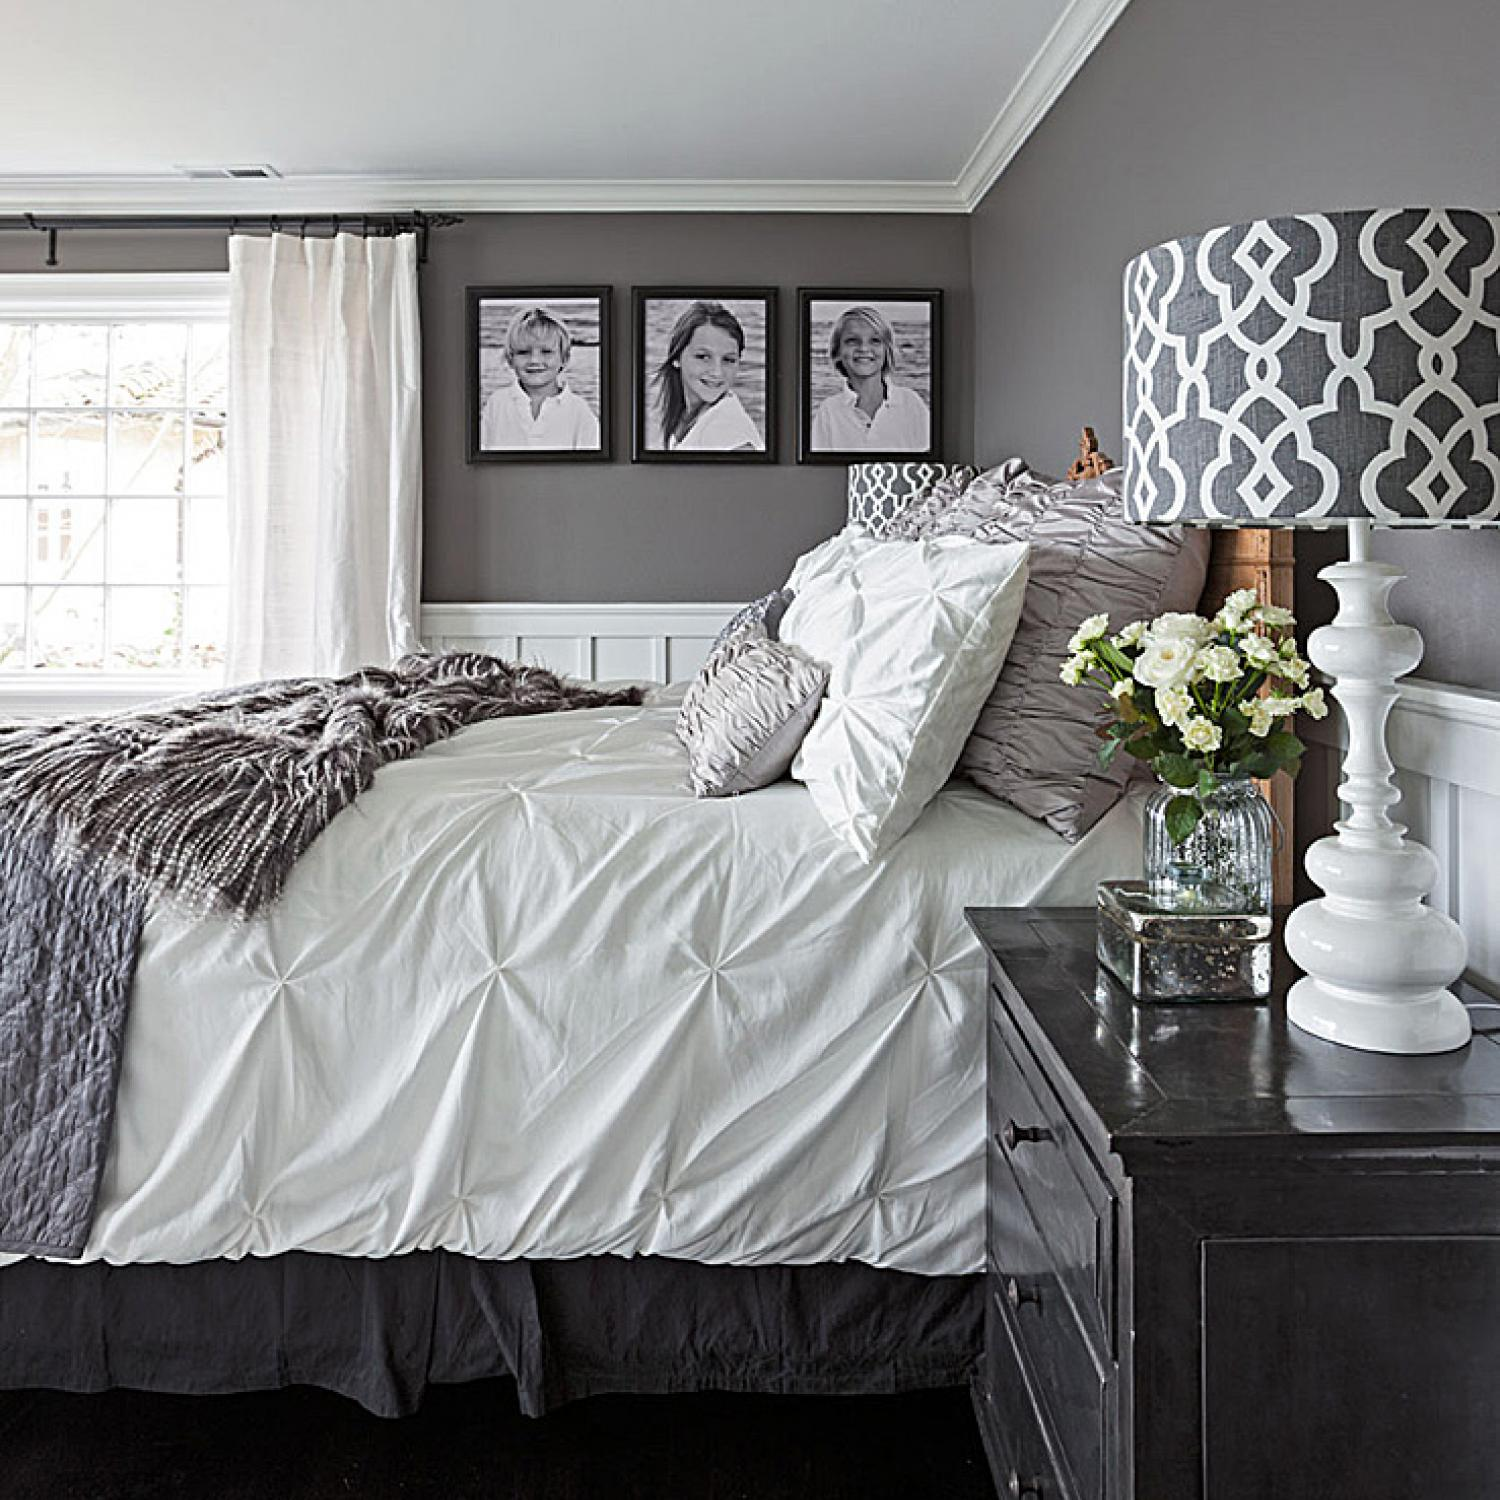 & Gorgeous Gray-and-White Bedrooms | Traditional Home